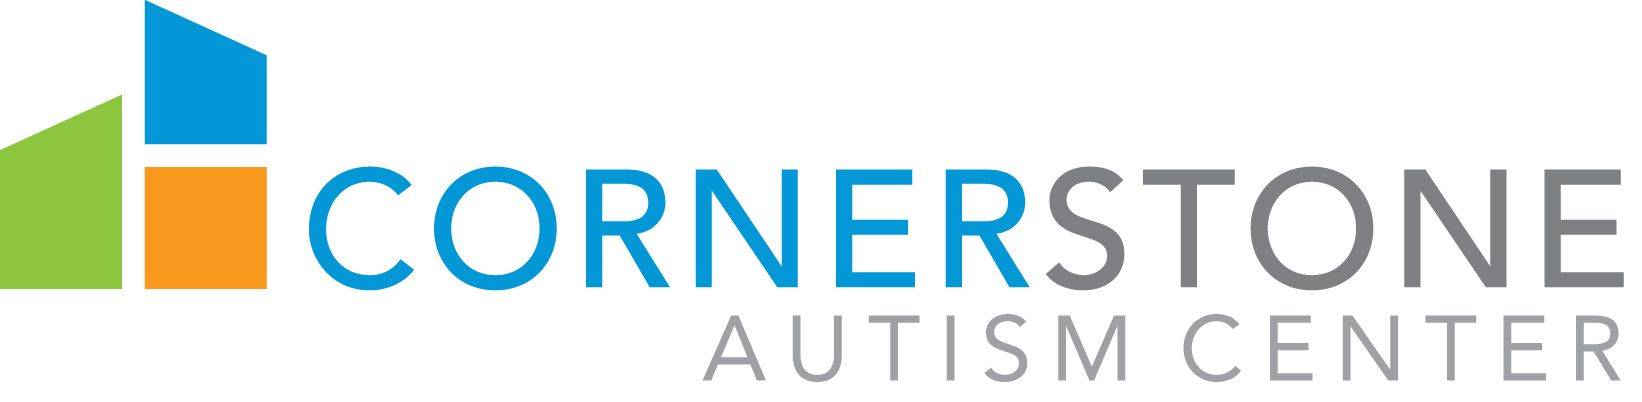 Cornerstone Autism Center logo